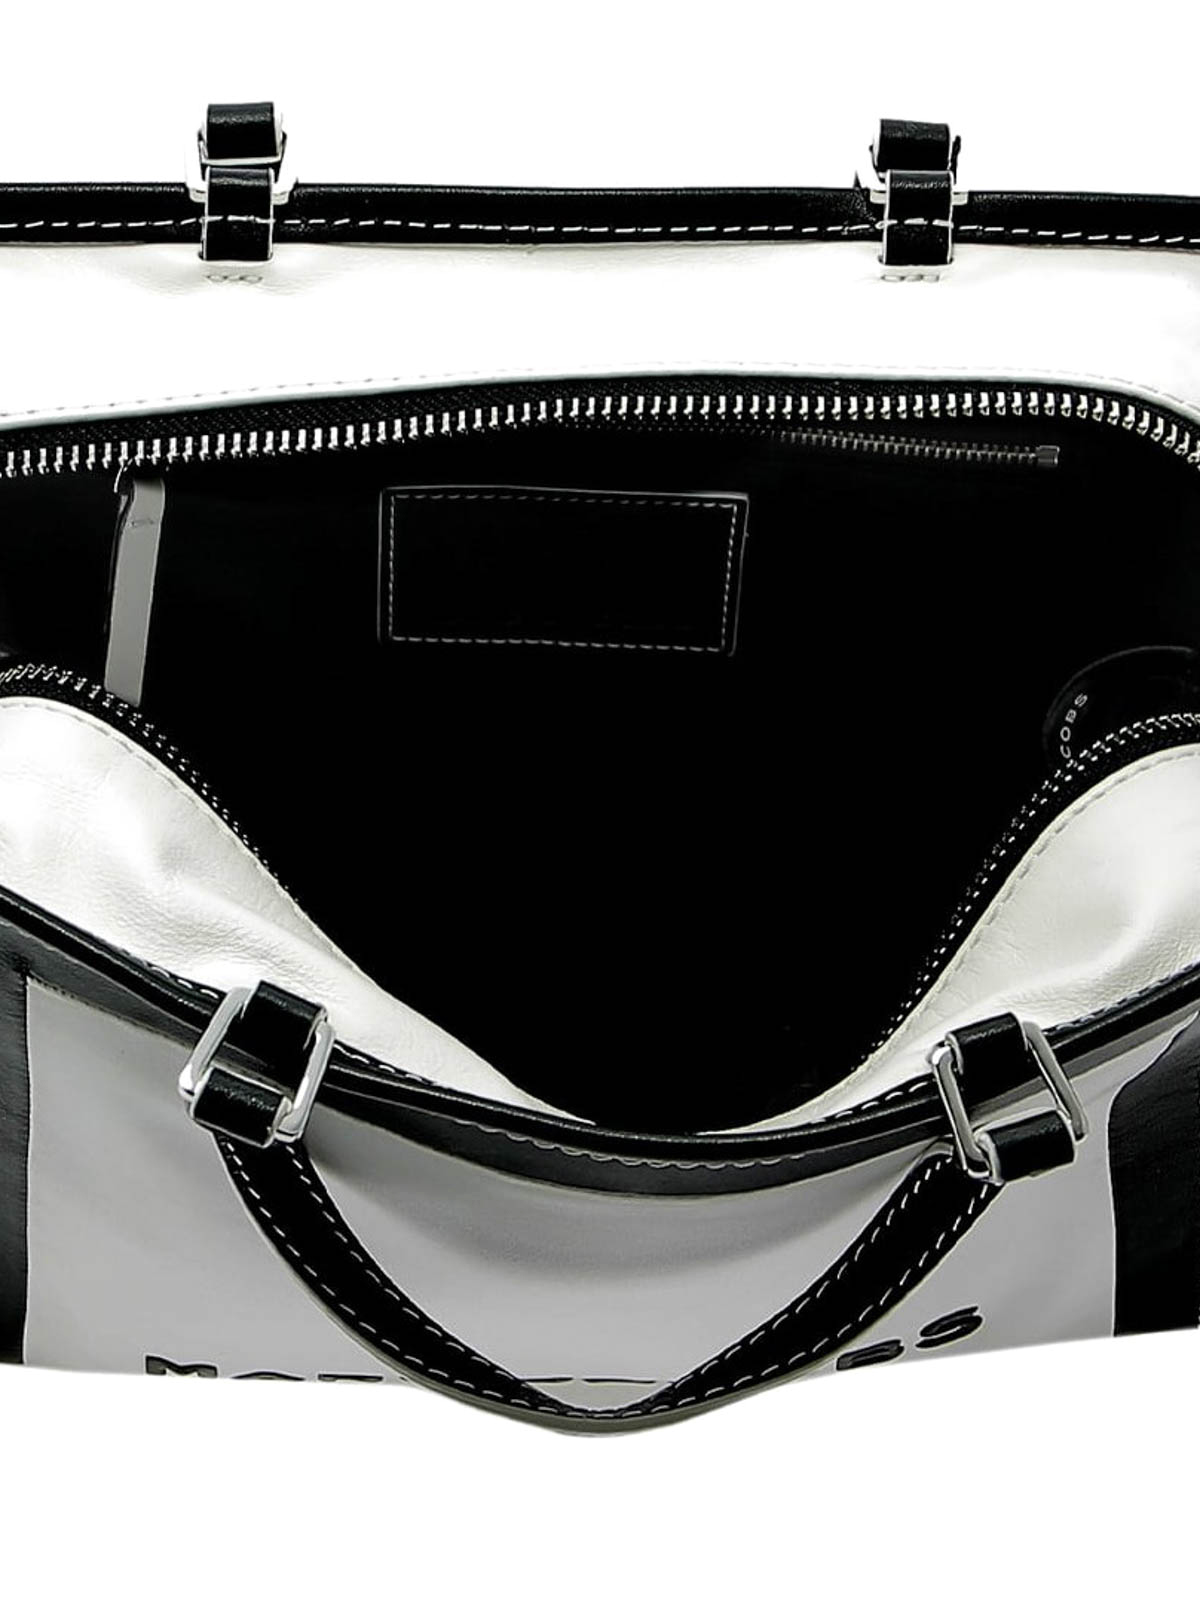 MARC JACOBS buy online The Box 29 black and white tote. MARC JACOBS  totes  bags ... 624dce394b717